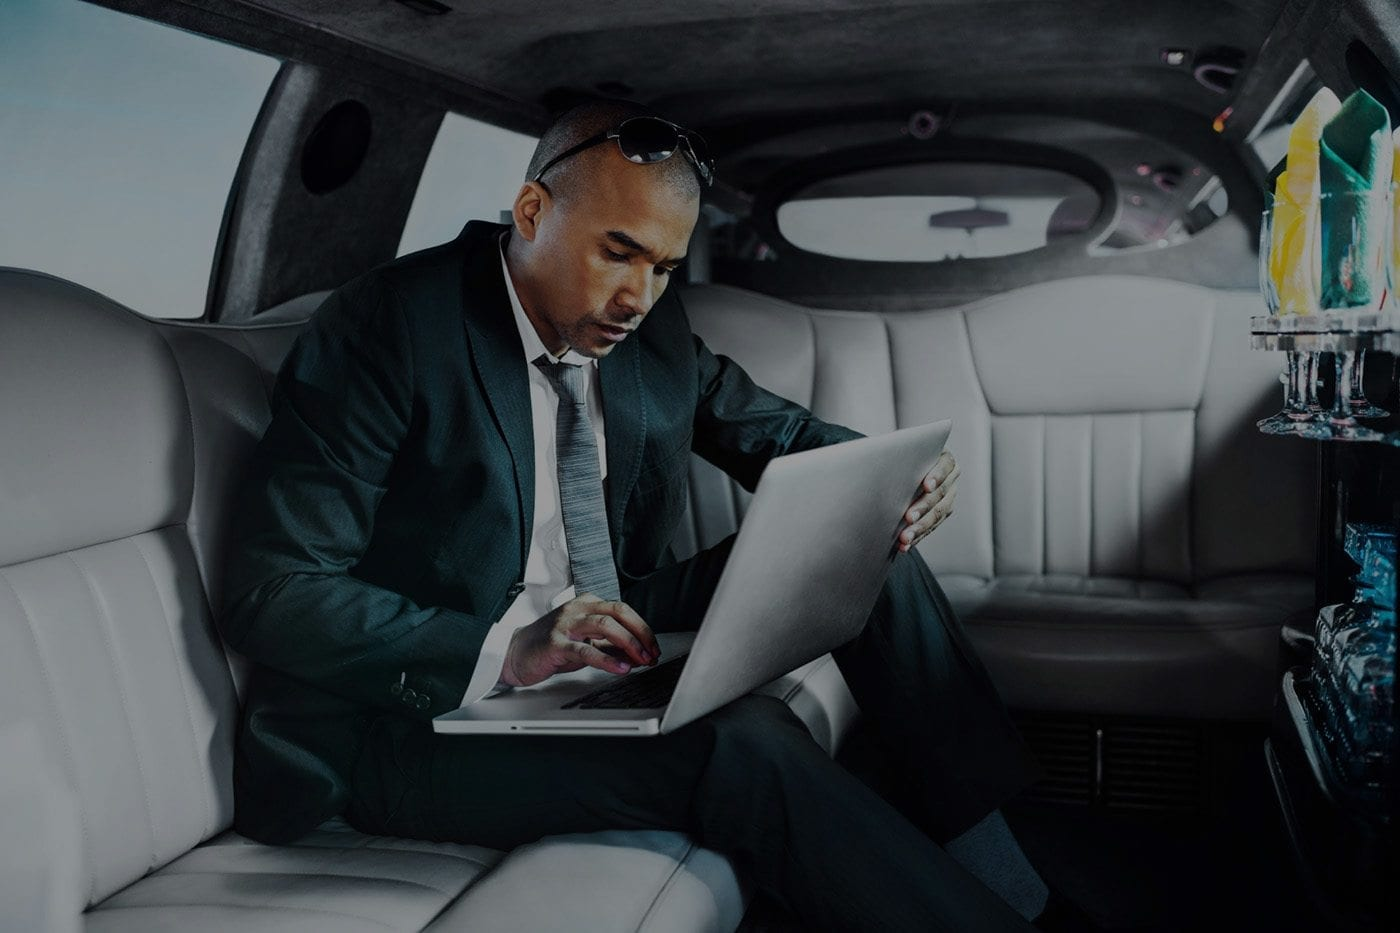 Man in limo working on a laptop